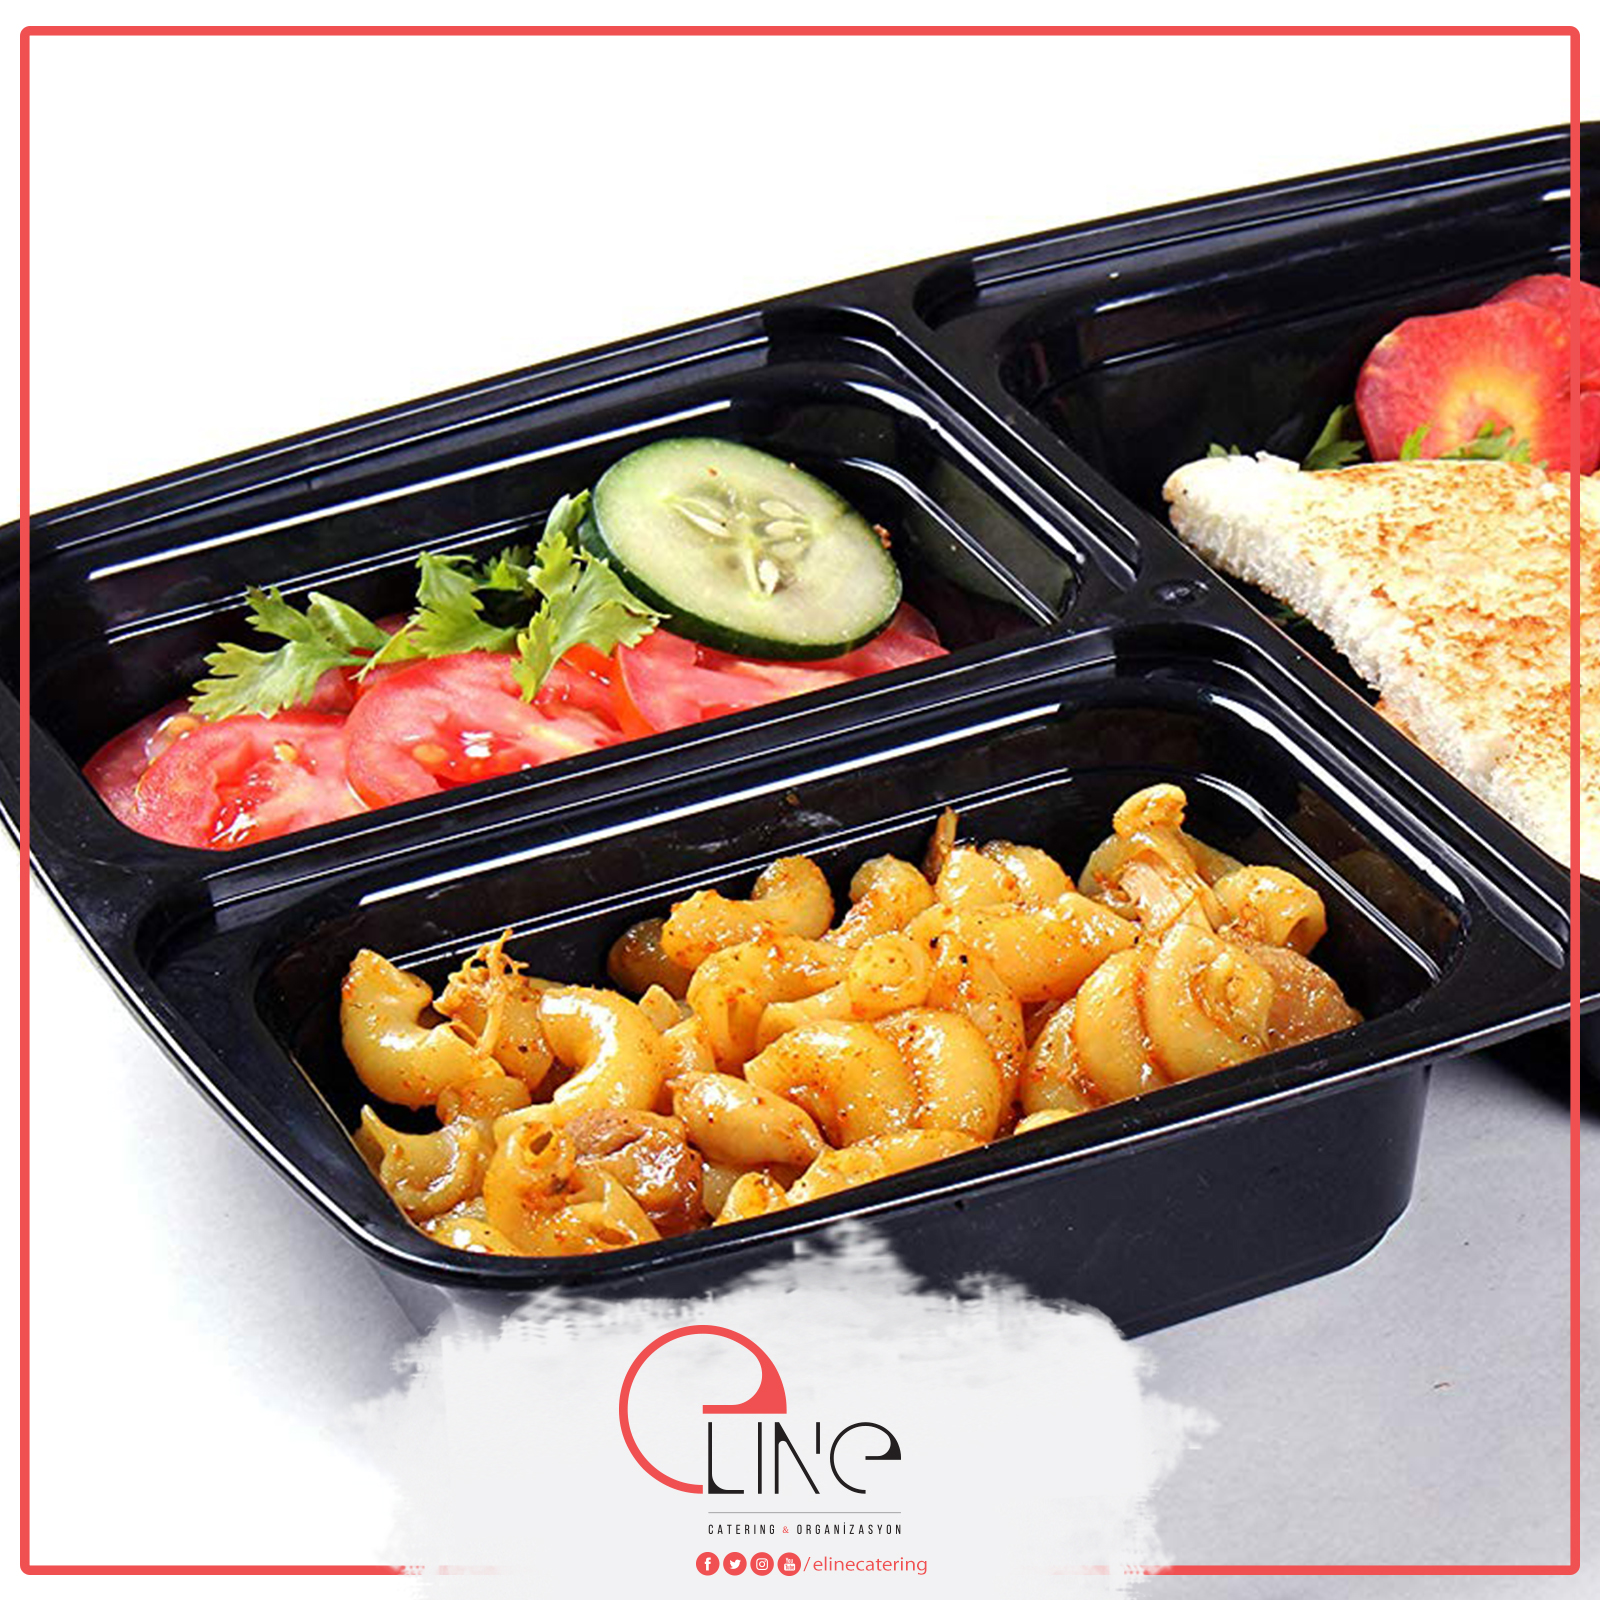 Eline Catering Lunchbox